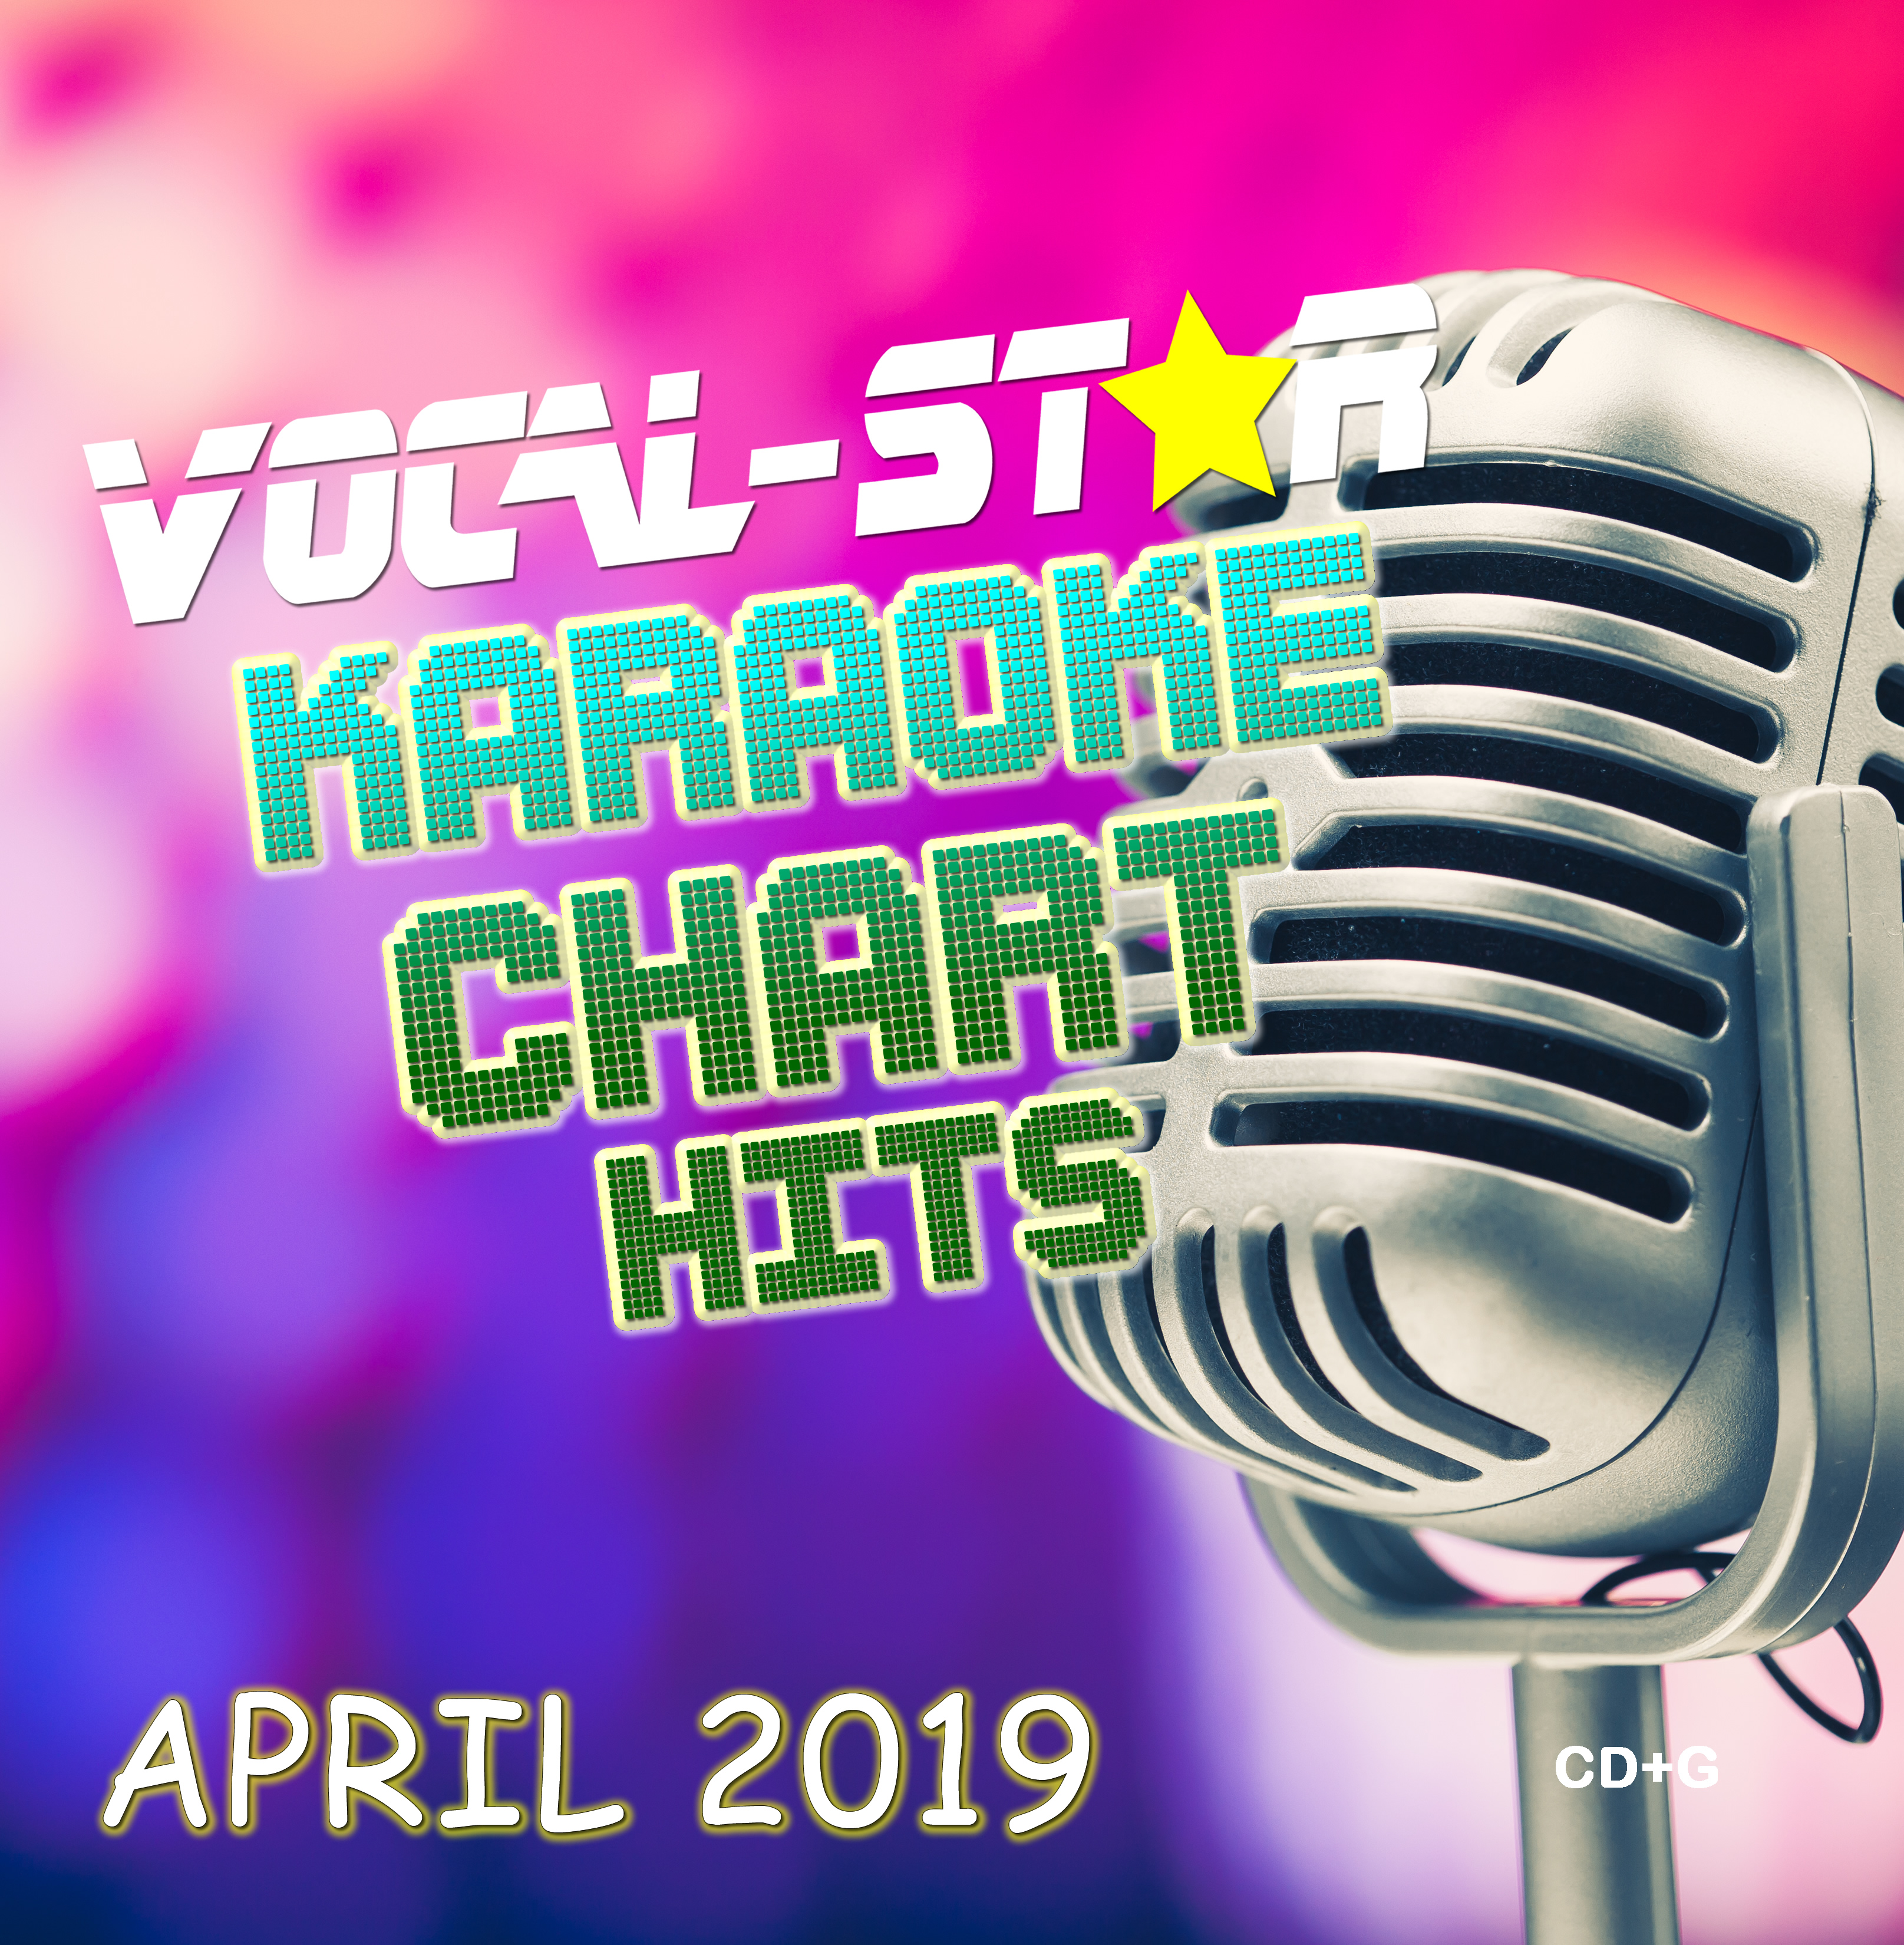 Vocal-Star April 2019 Hits CD+G Disc